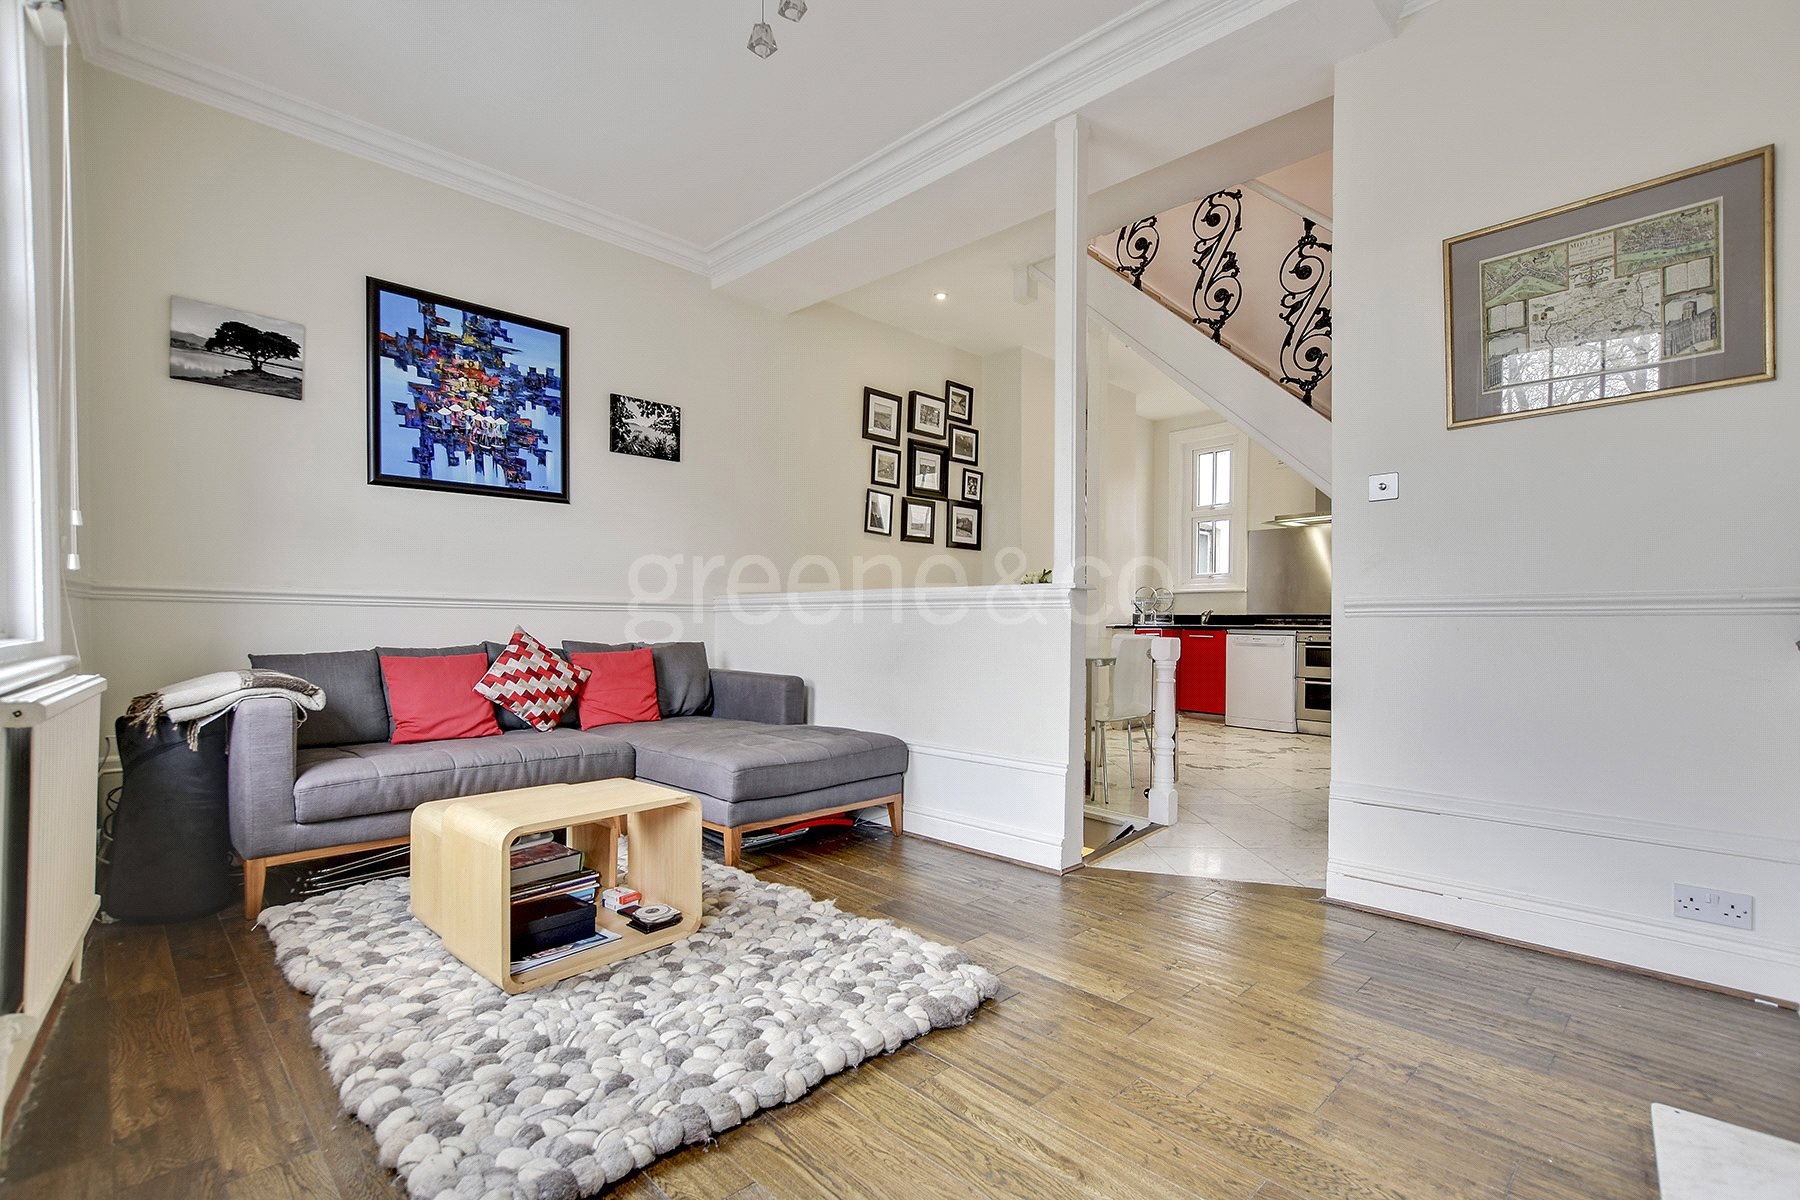 2 Bedrooms Maisonette Flat for sale in Fortune Green Road, West Hampstead, London, NW6